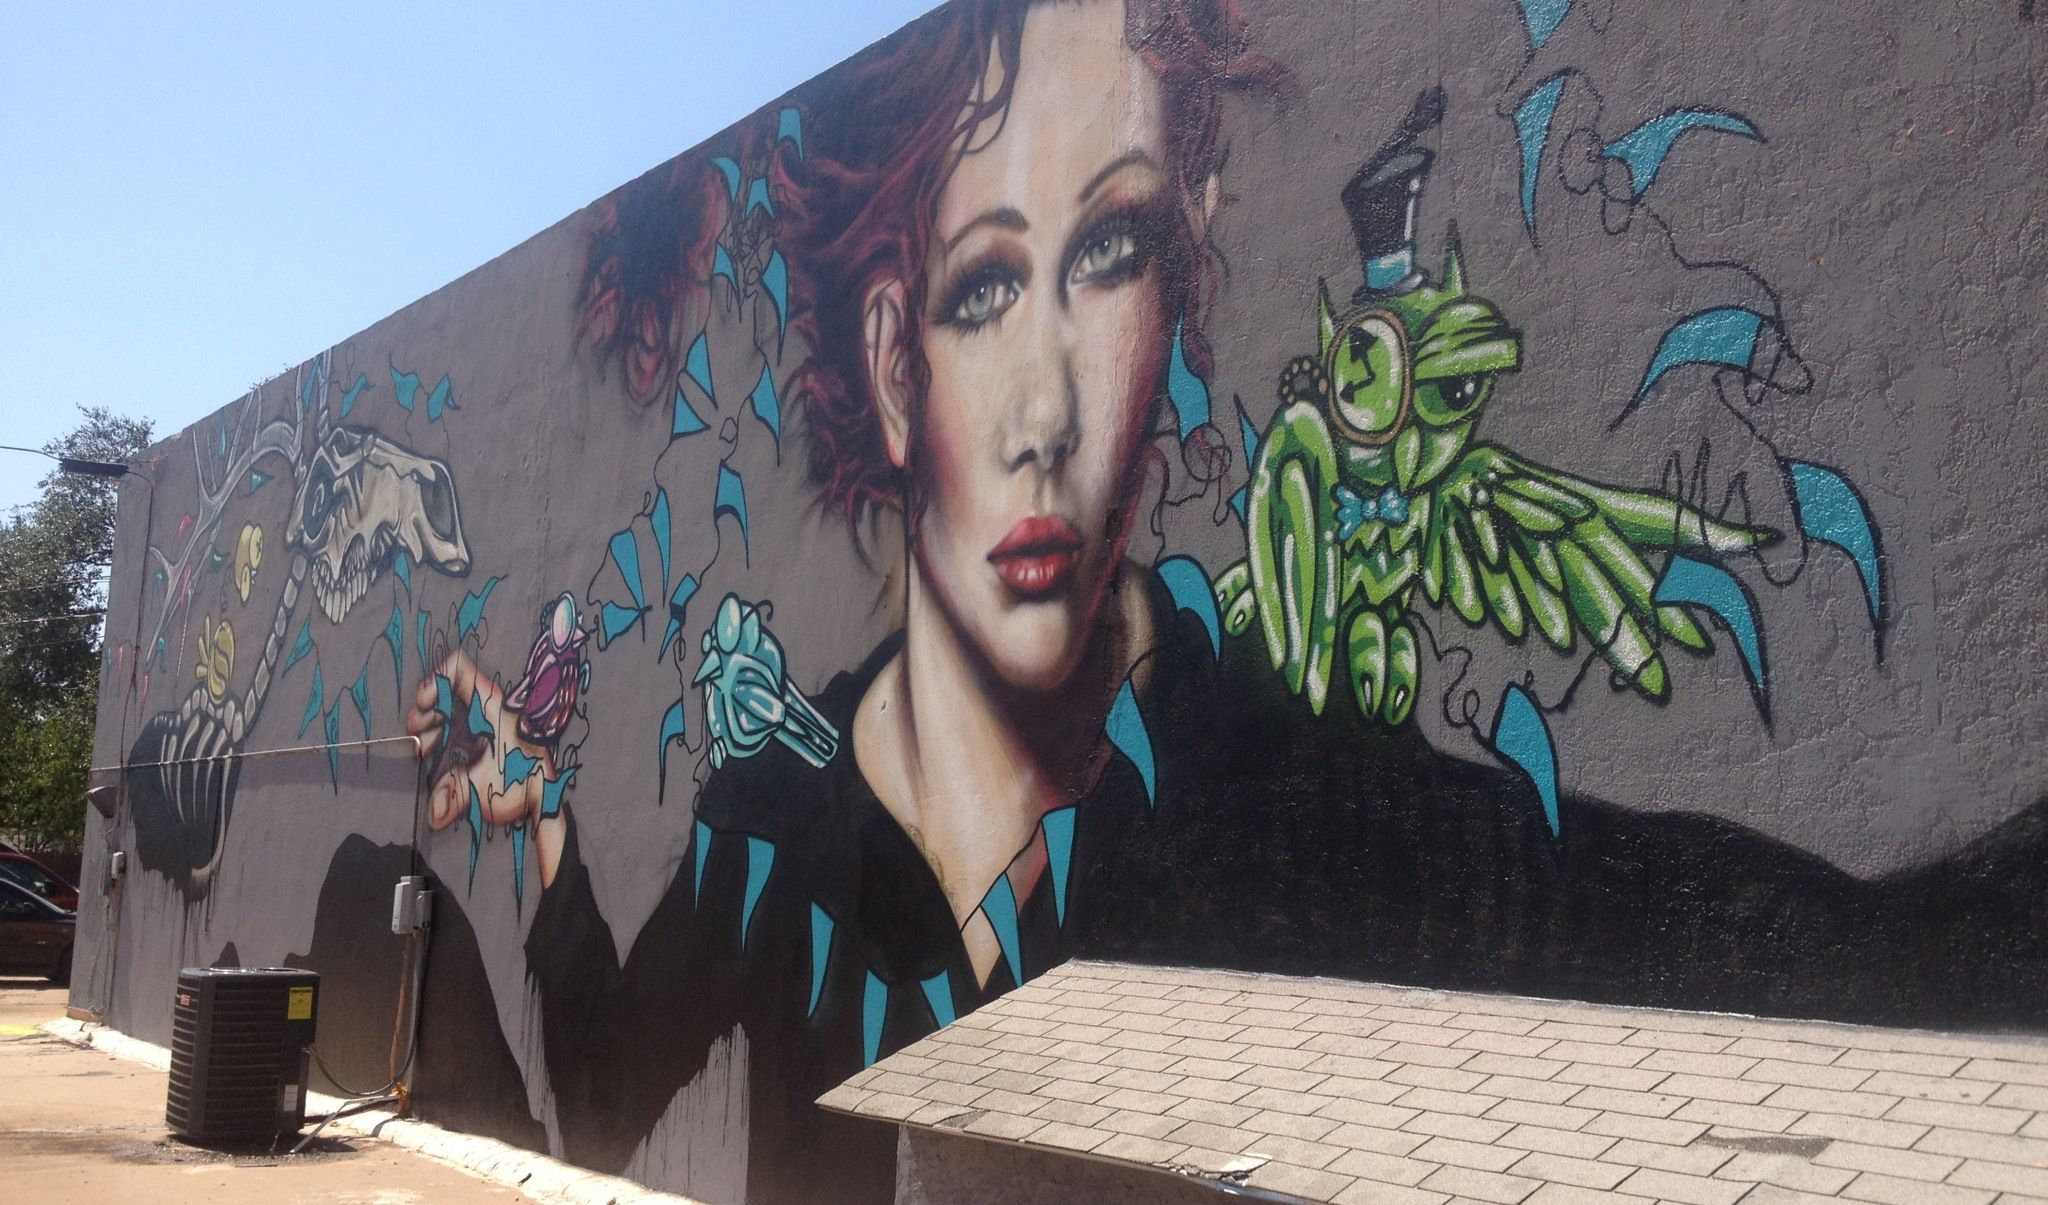 Check out some of the amazing street art here in Lubbock